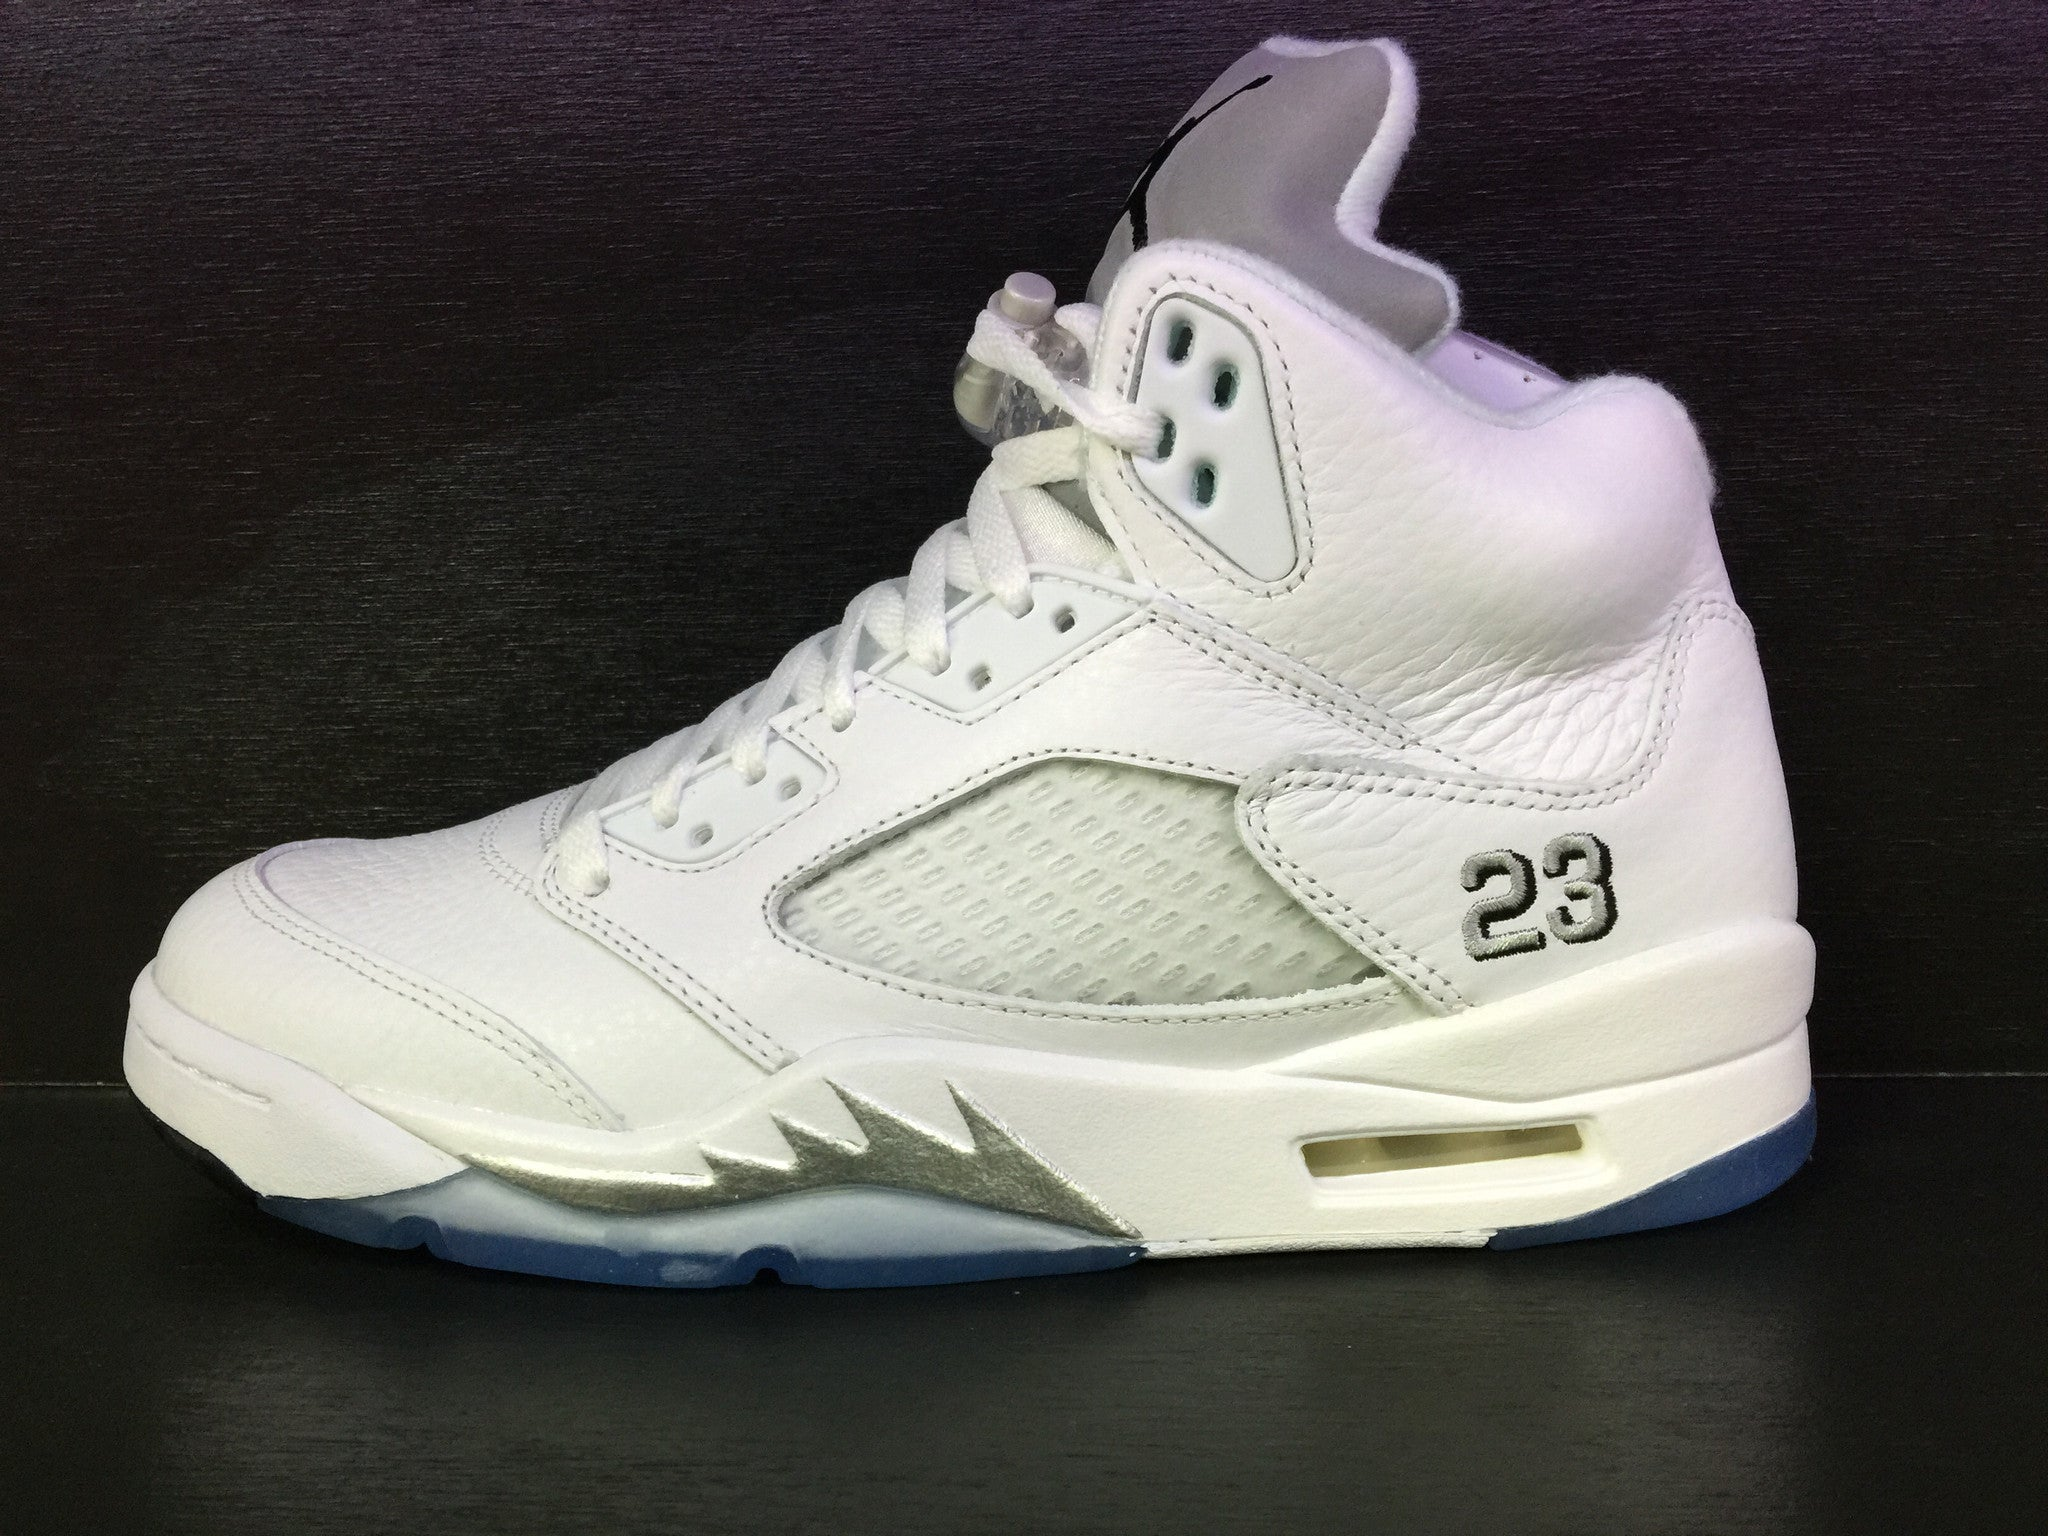 Air Jordan 5 Retro 'Metallic Silver' Remastered